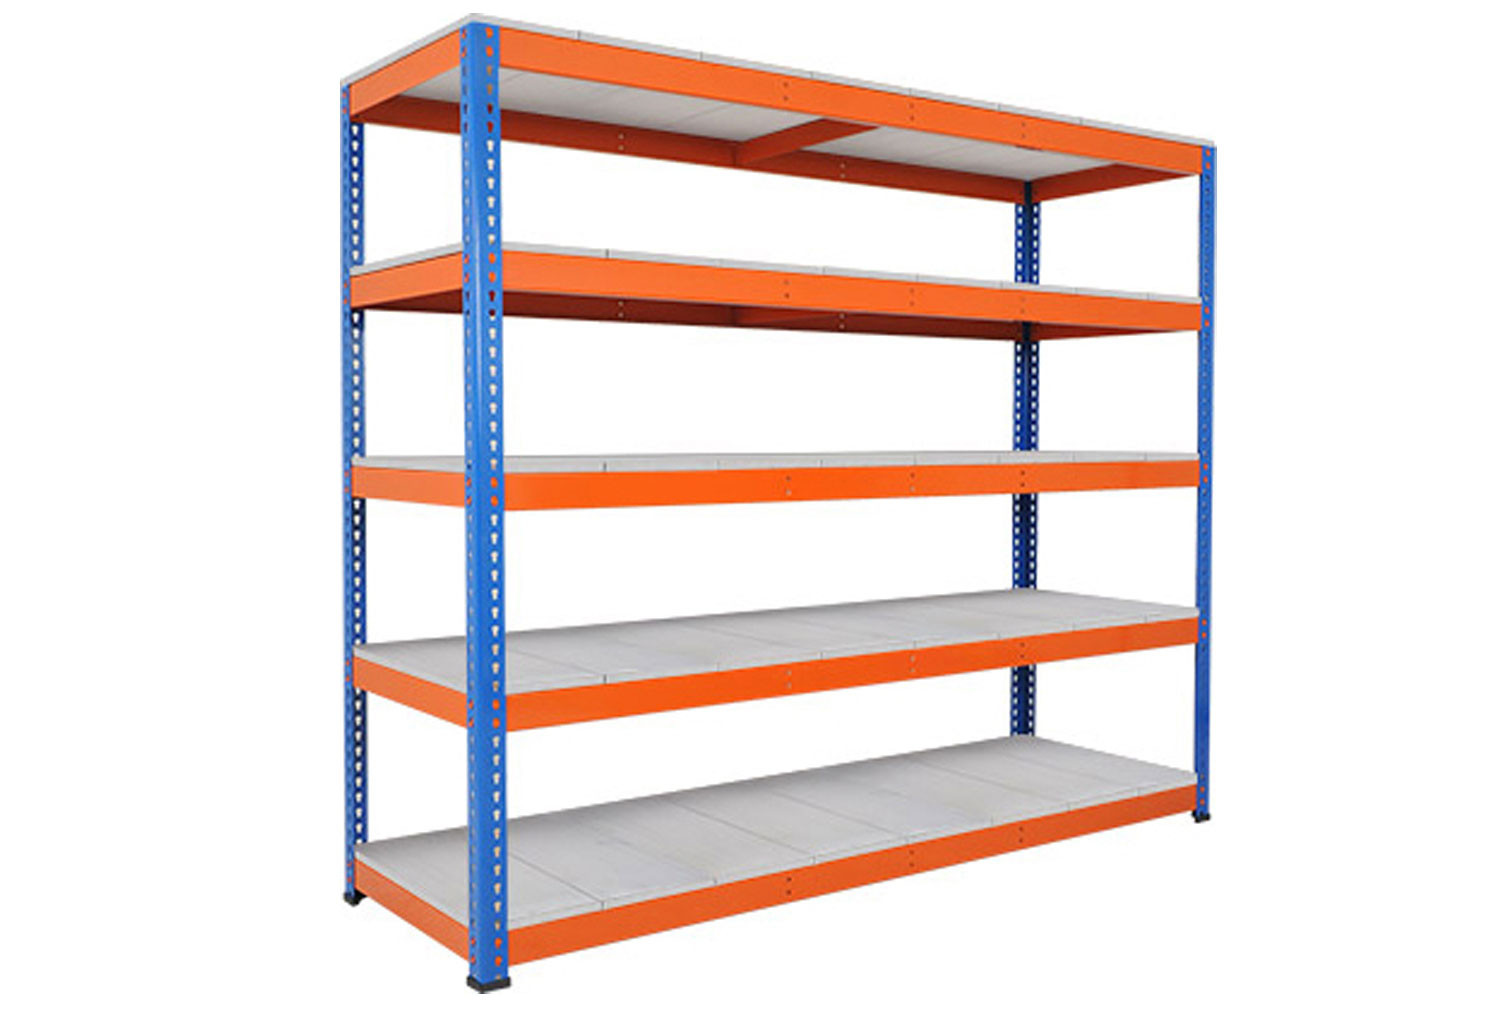 Rapid 1 Heavy Duty Shelving With 5 Galvanized Shelves 2440wx1980h (Blue/Orange)